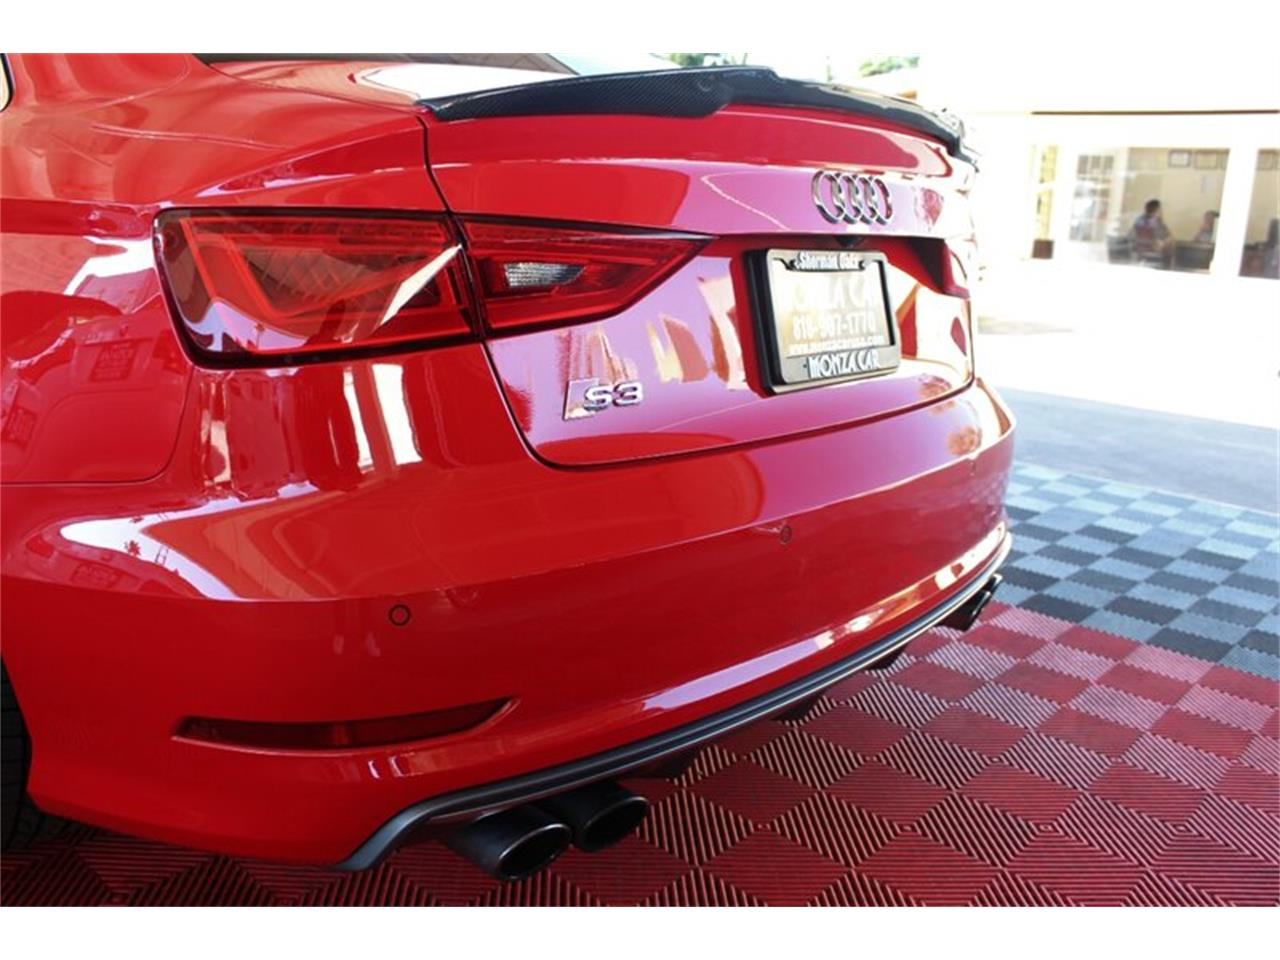 Large Picture of 2015 S3 located in California - $26,995.00 - Q3OQ